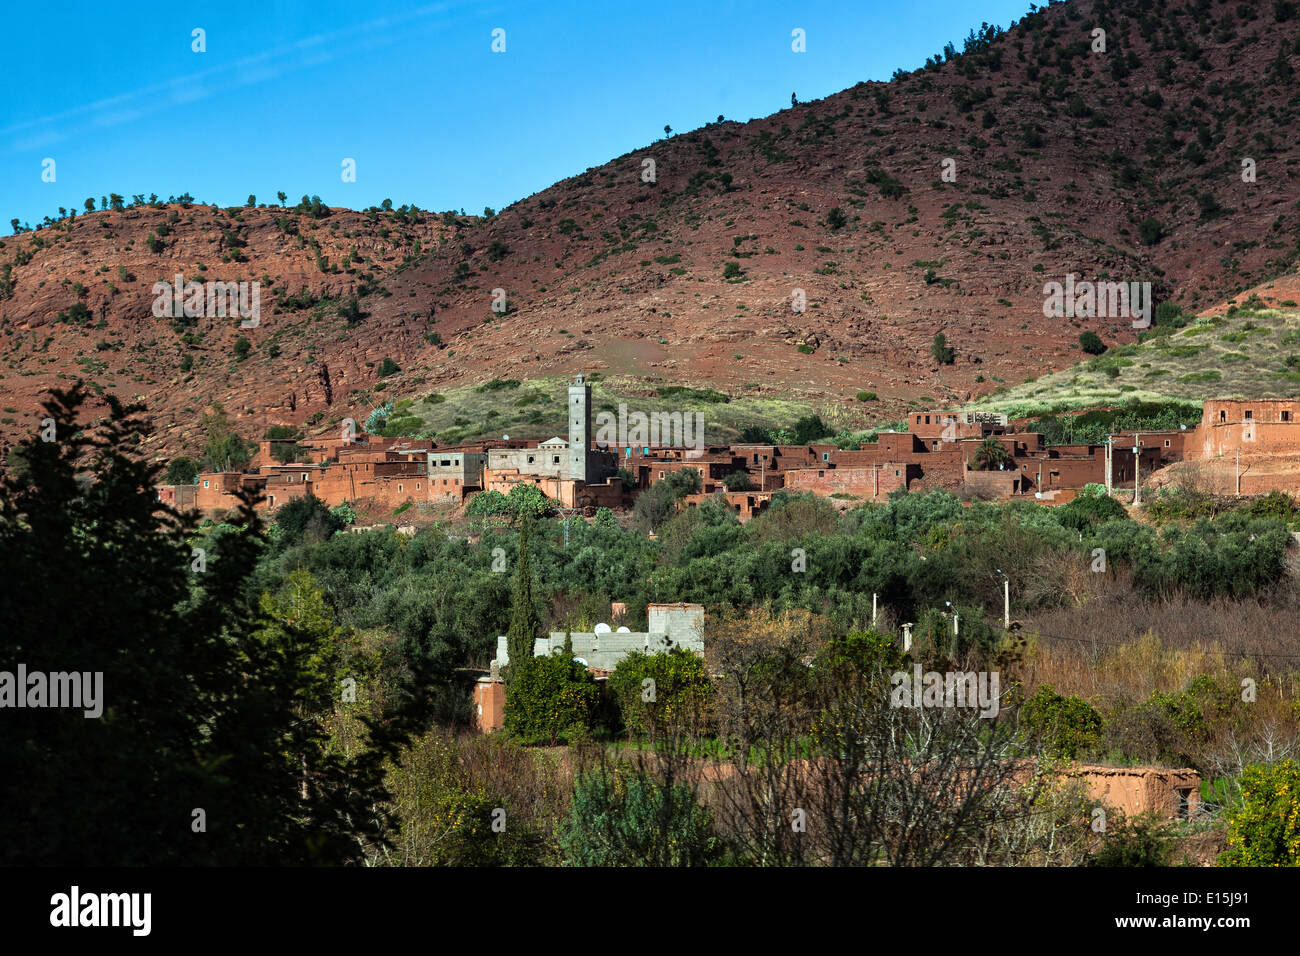 village in the hinterland of Morocco - Stock Image